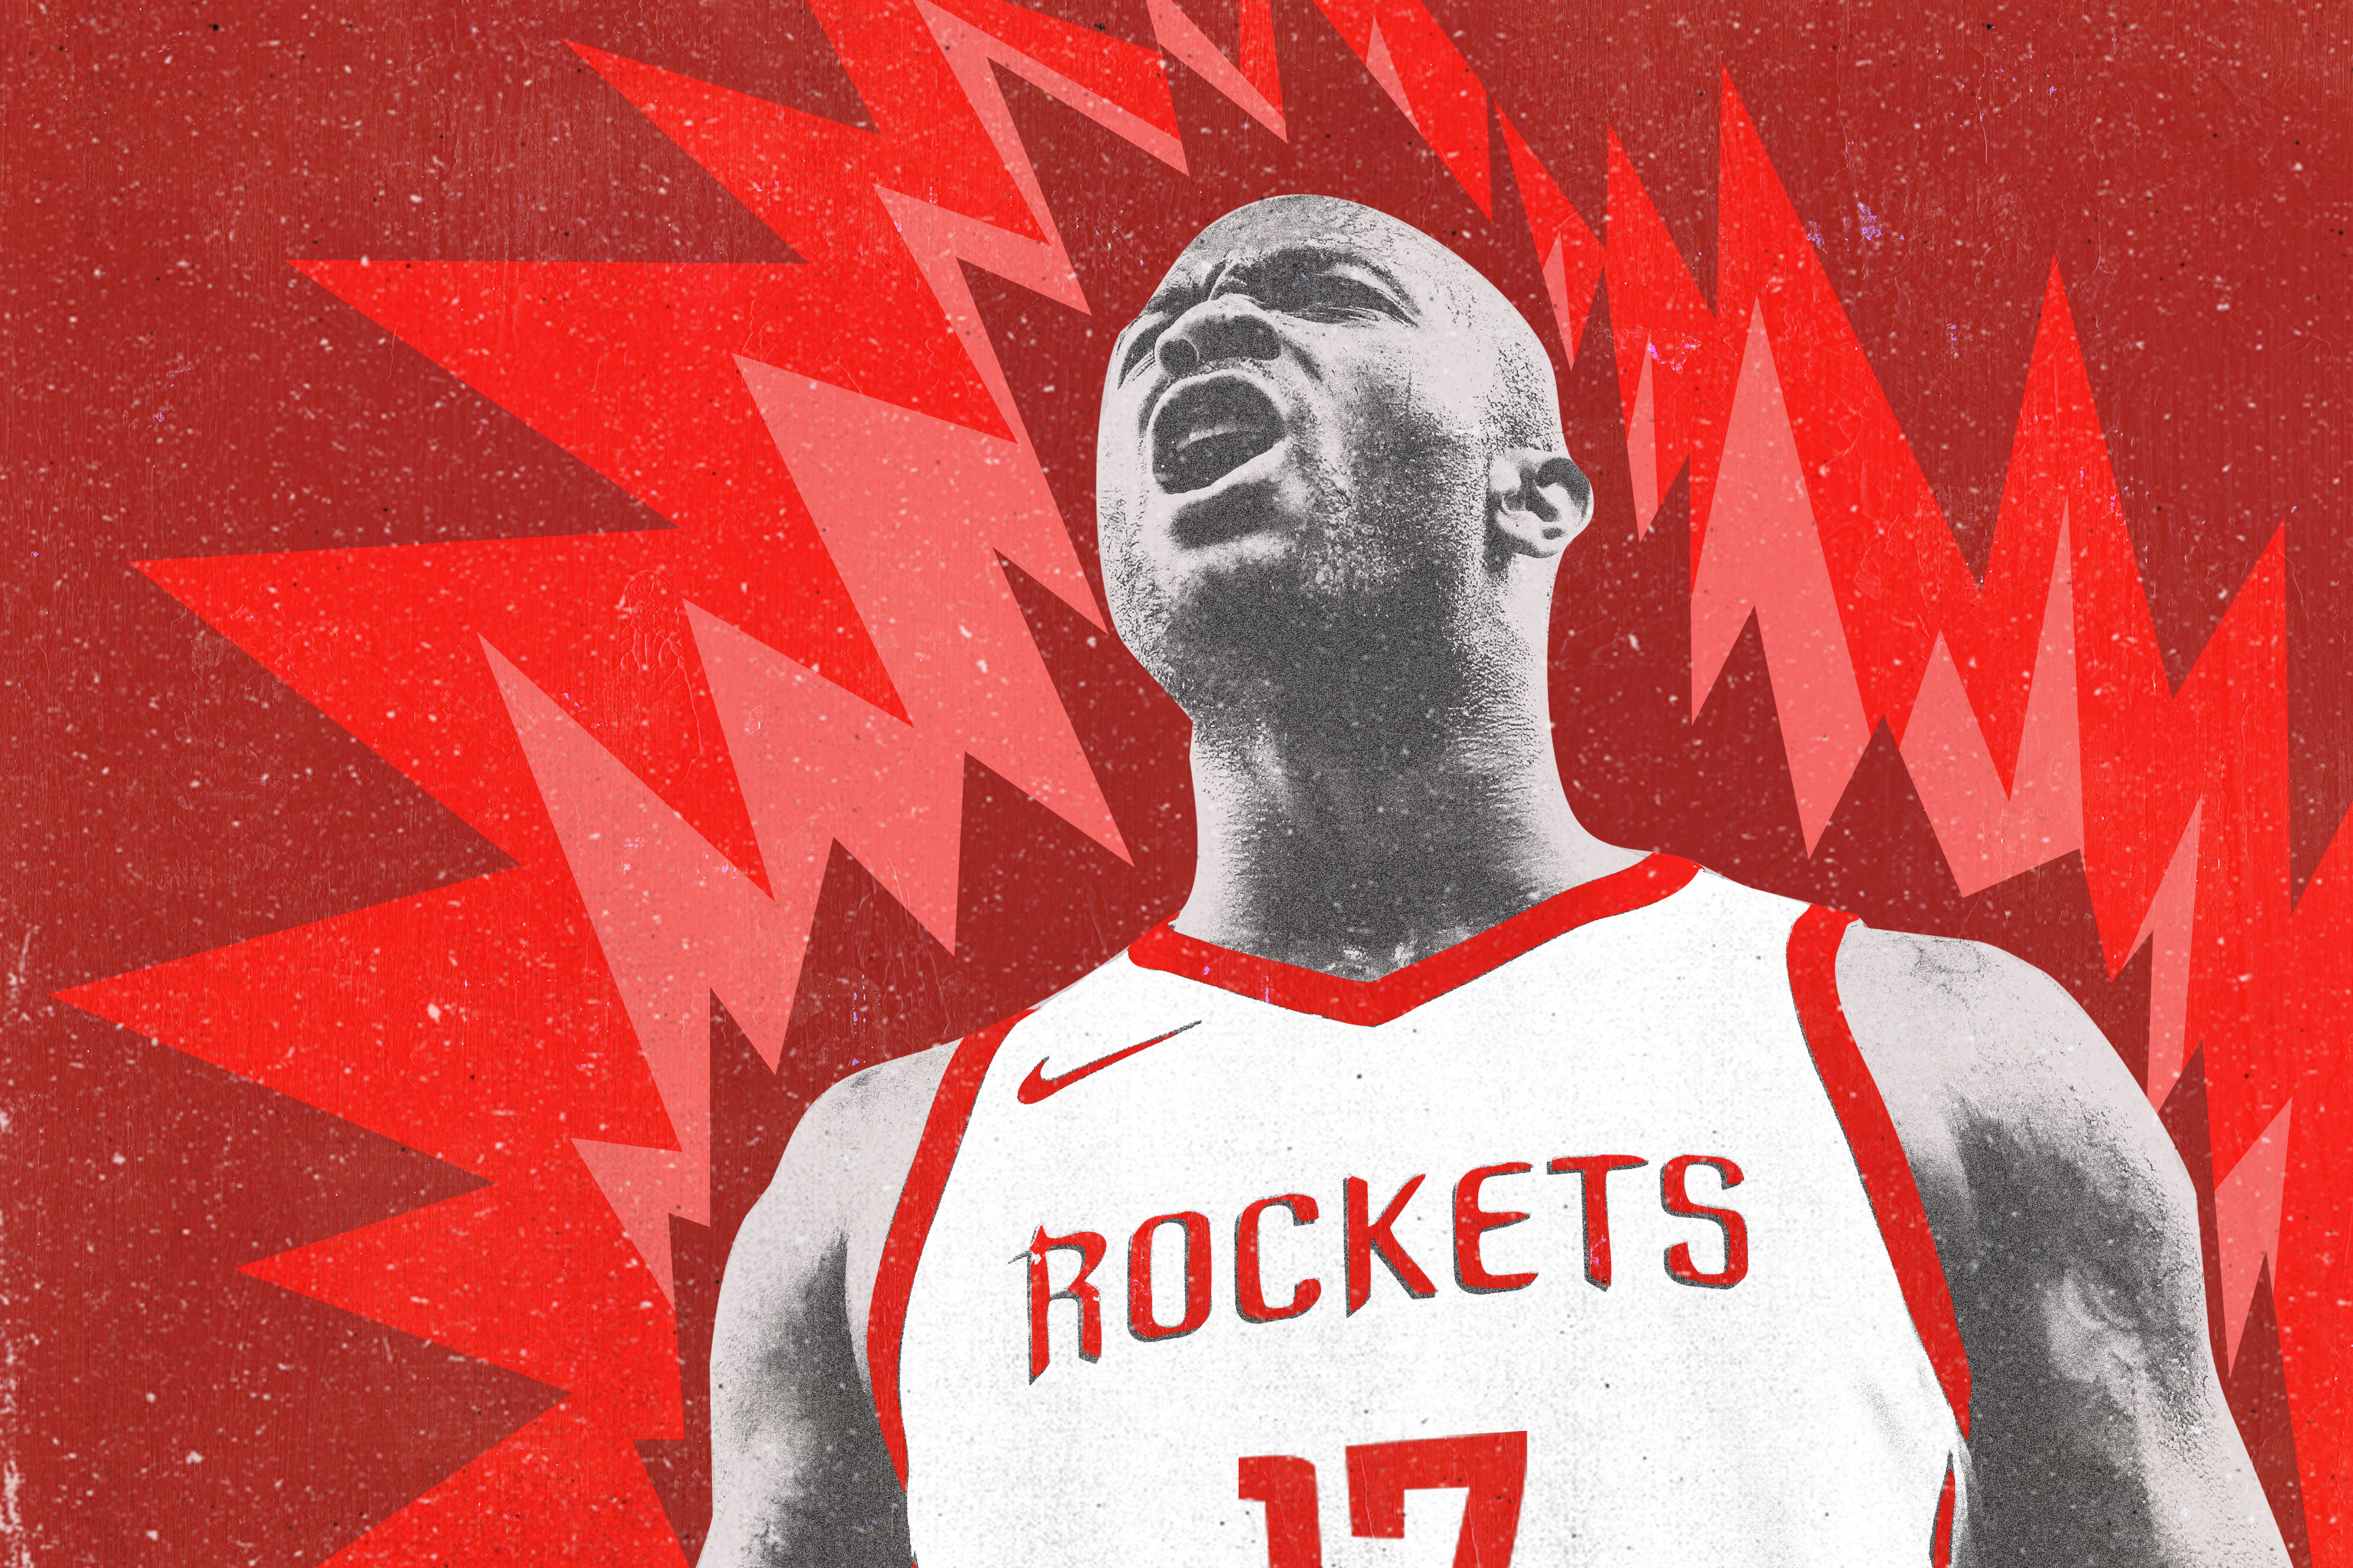 5362ea2e914a7 Everything That s Awesome About Houston s P.J. Tucker - The Ringer